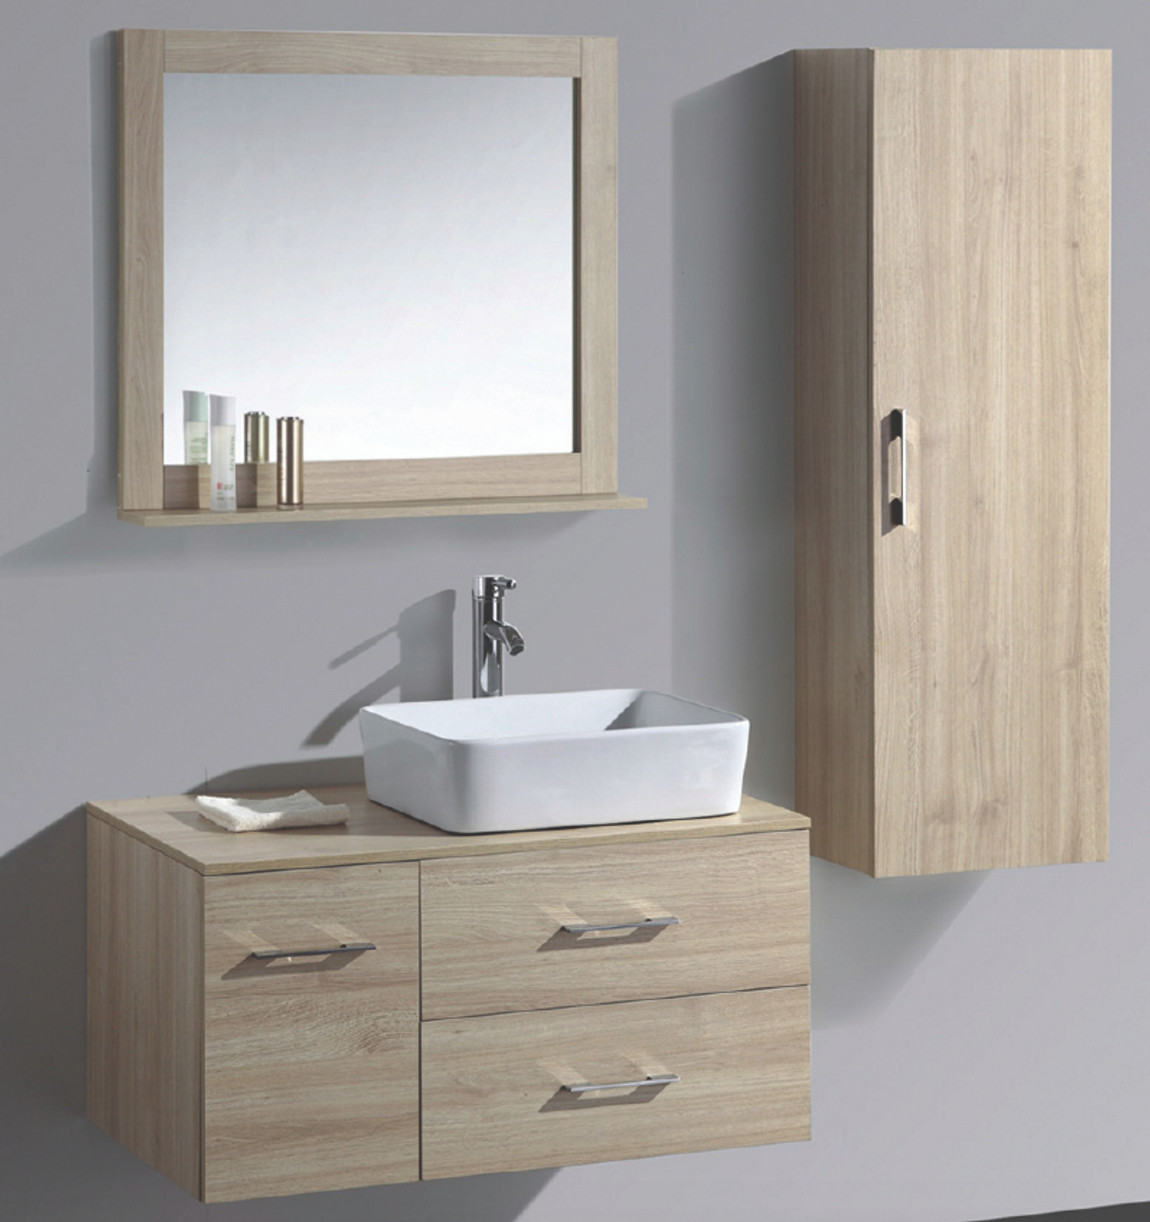 Super 35 1 4 Wall Mount Bathroom Vanity Cabinet With Mirror And Side Cabinet 08Su Slt T603 1 Download Free Architecture Designs Viewormadebymaigaardcom